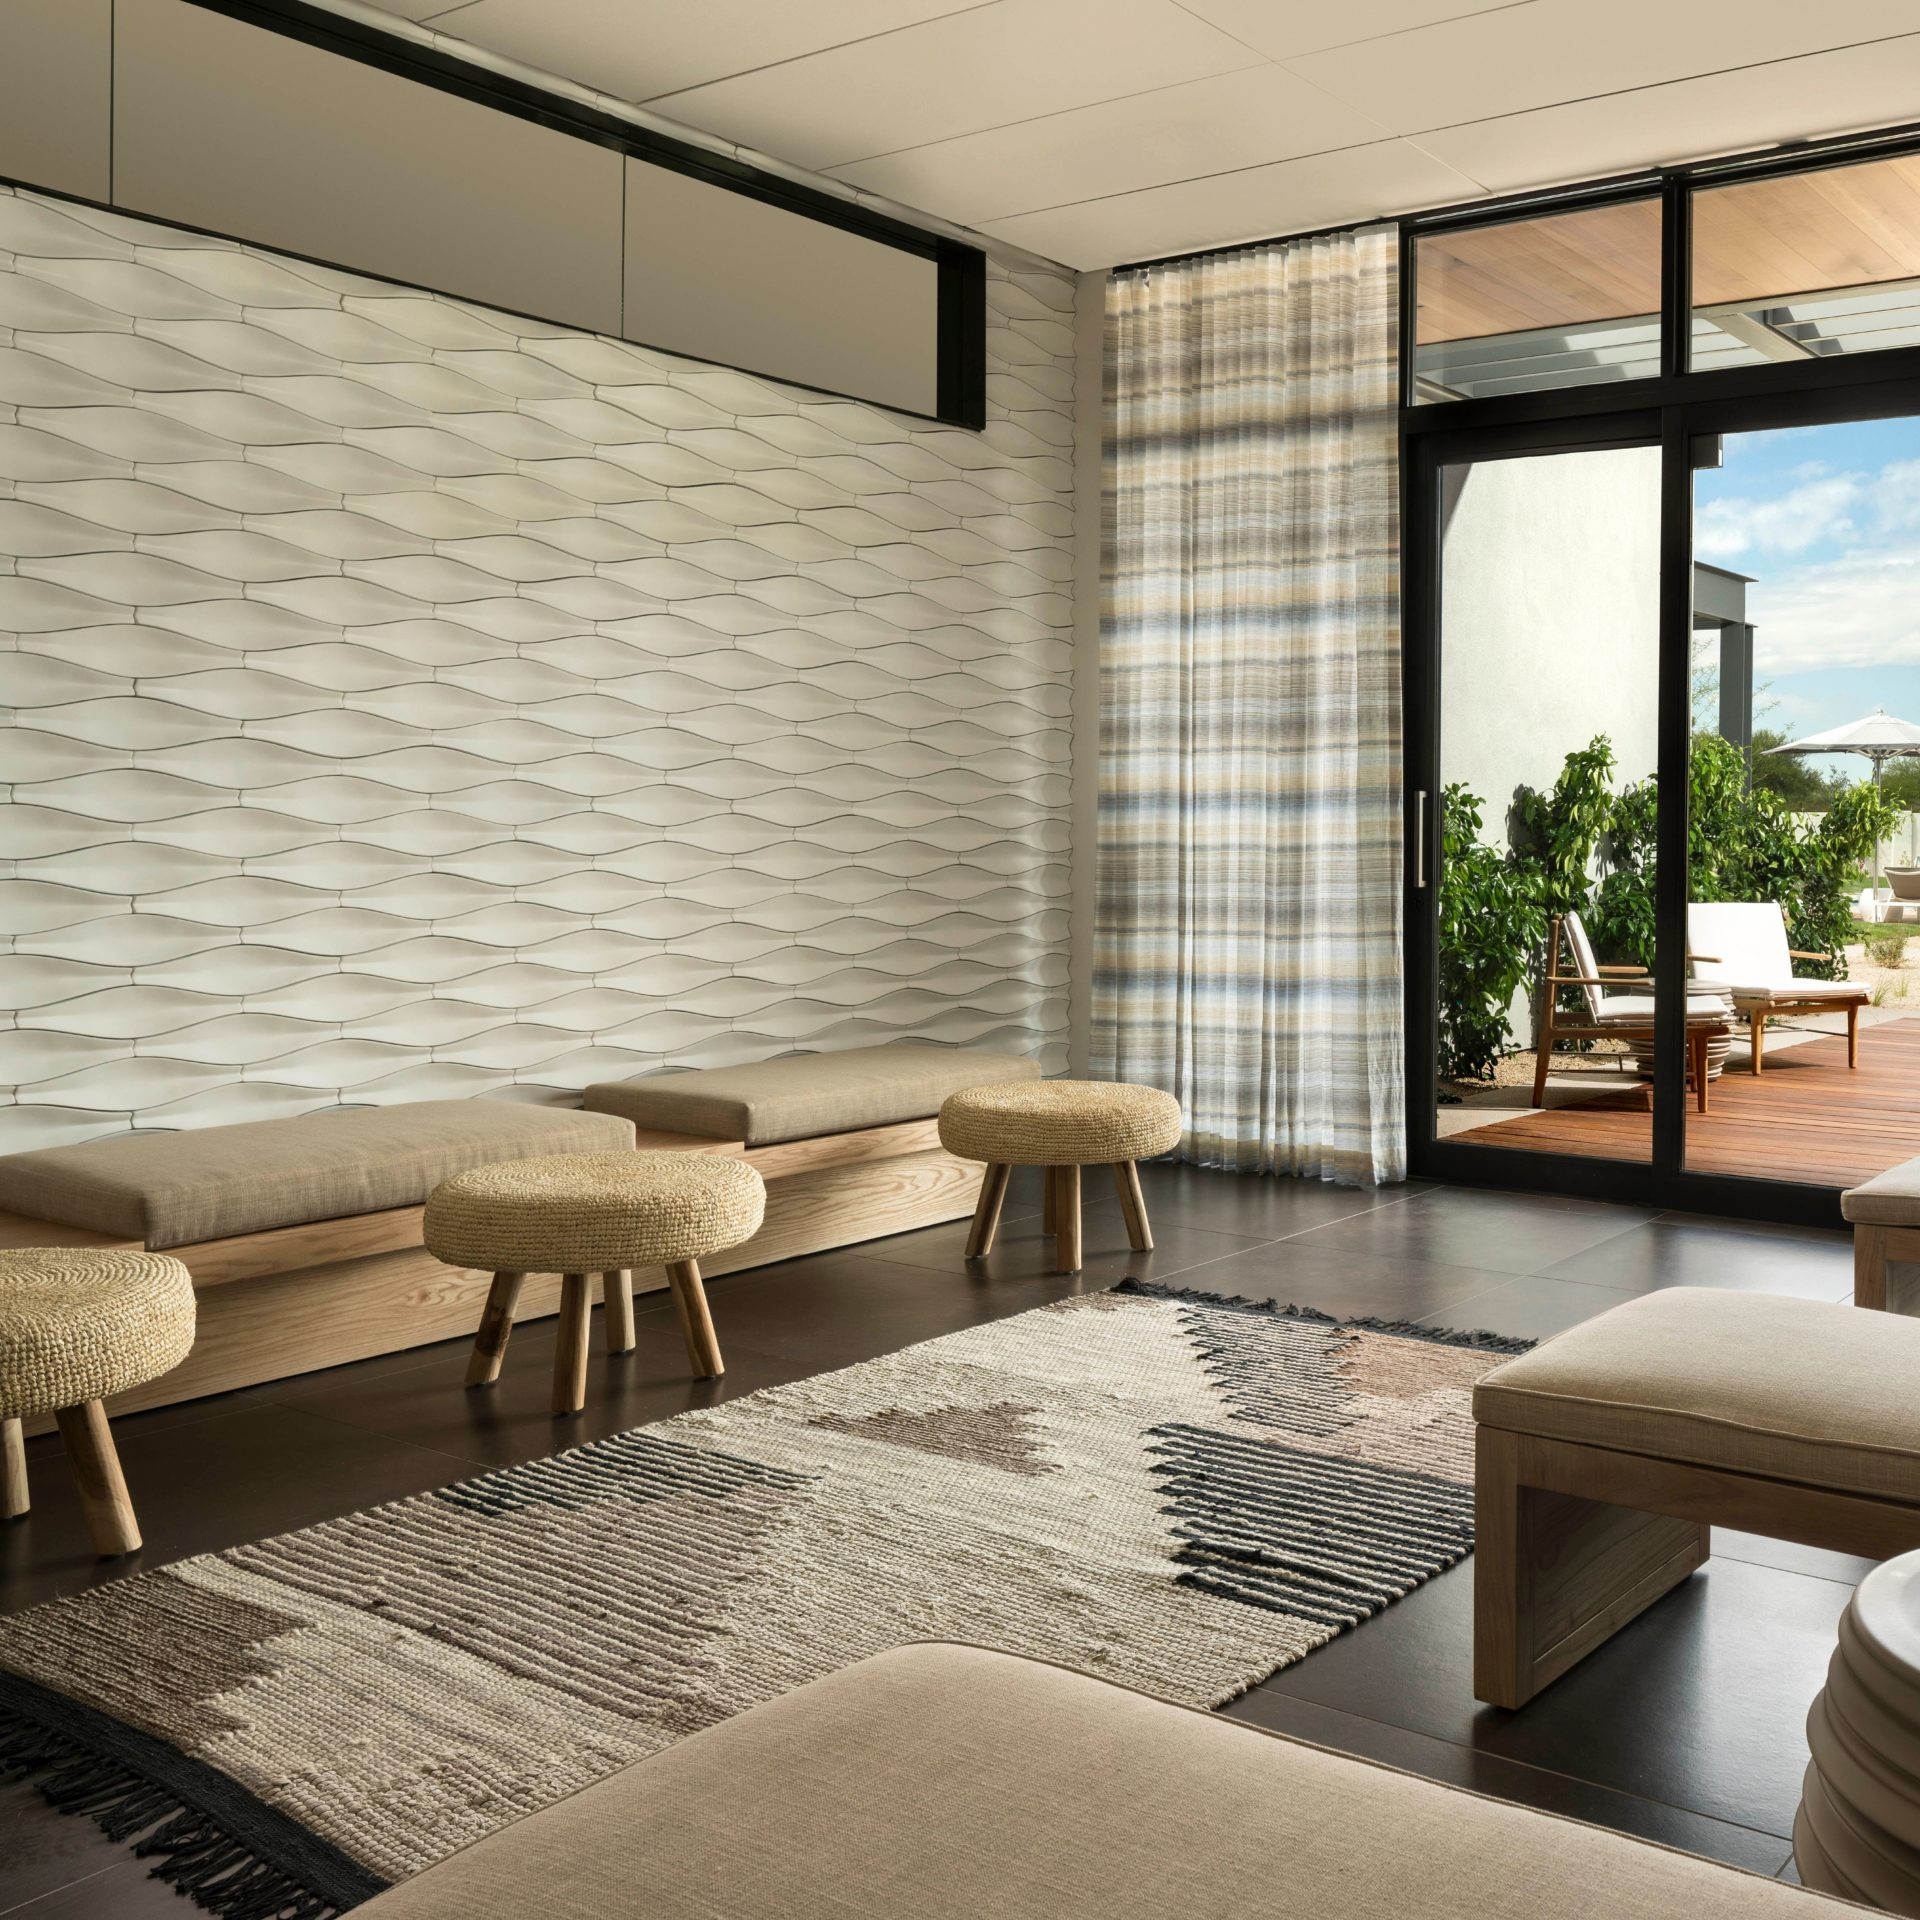 /Spa/118339-Palo-Verde-Spa-and-Apothecary-at-The-Andaz-Scottsdale-Resort